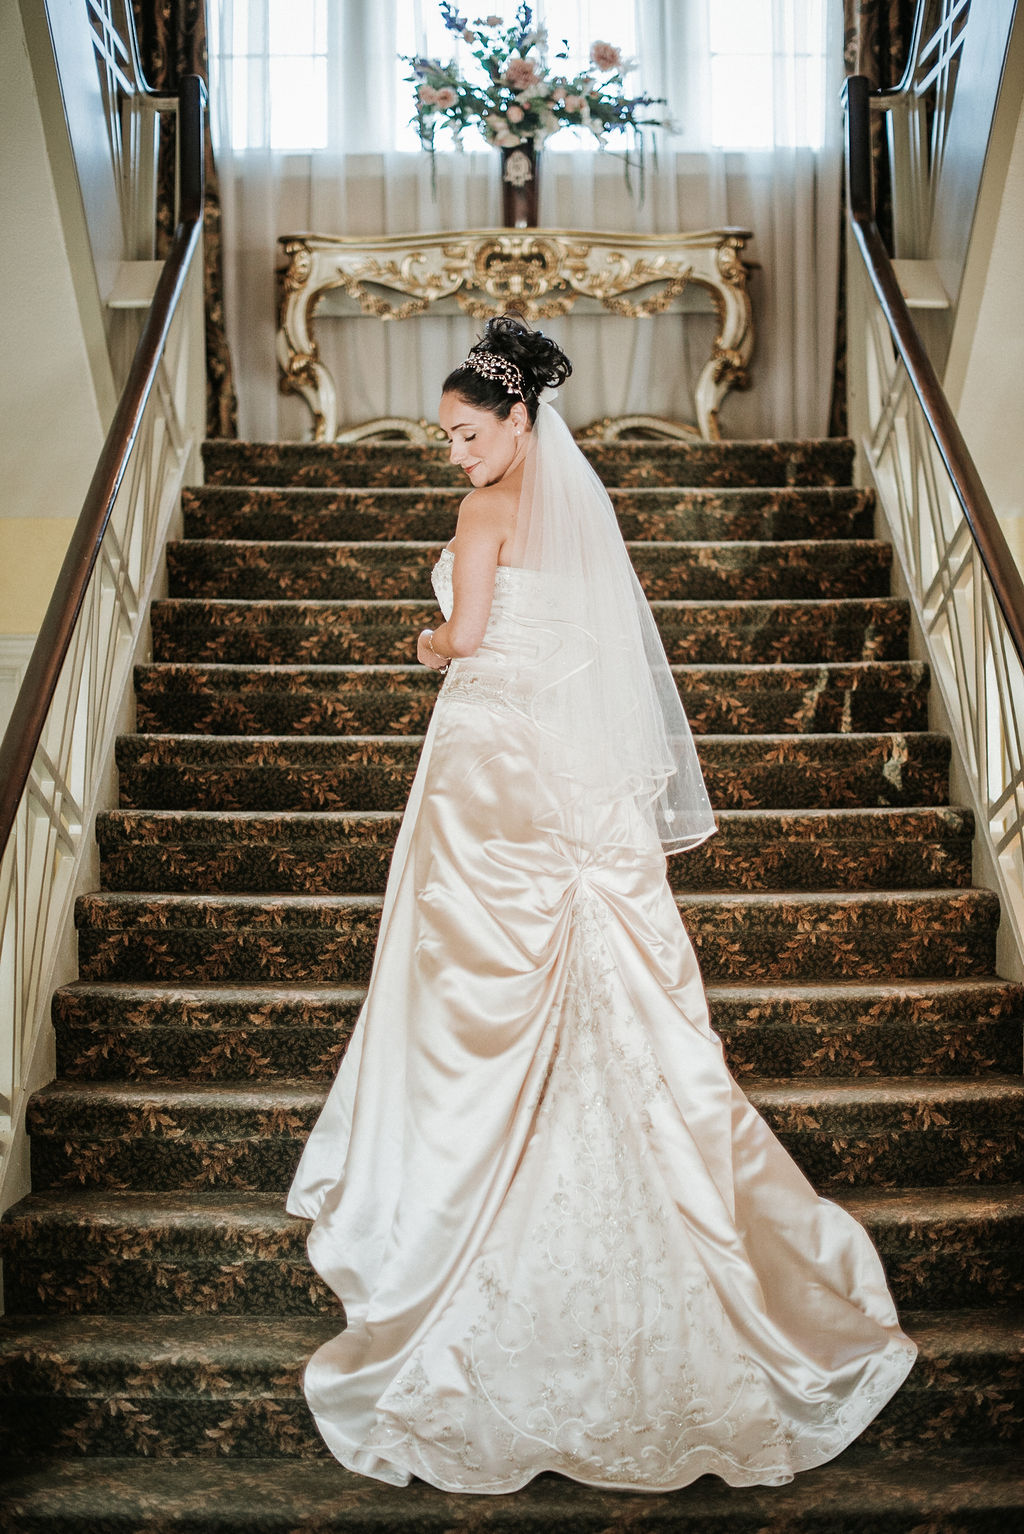 Bride posing on staircase at Inn at the Old Silk Mill